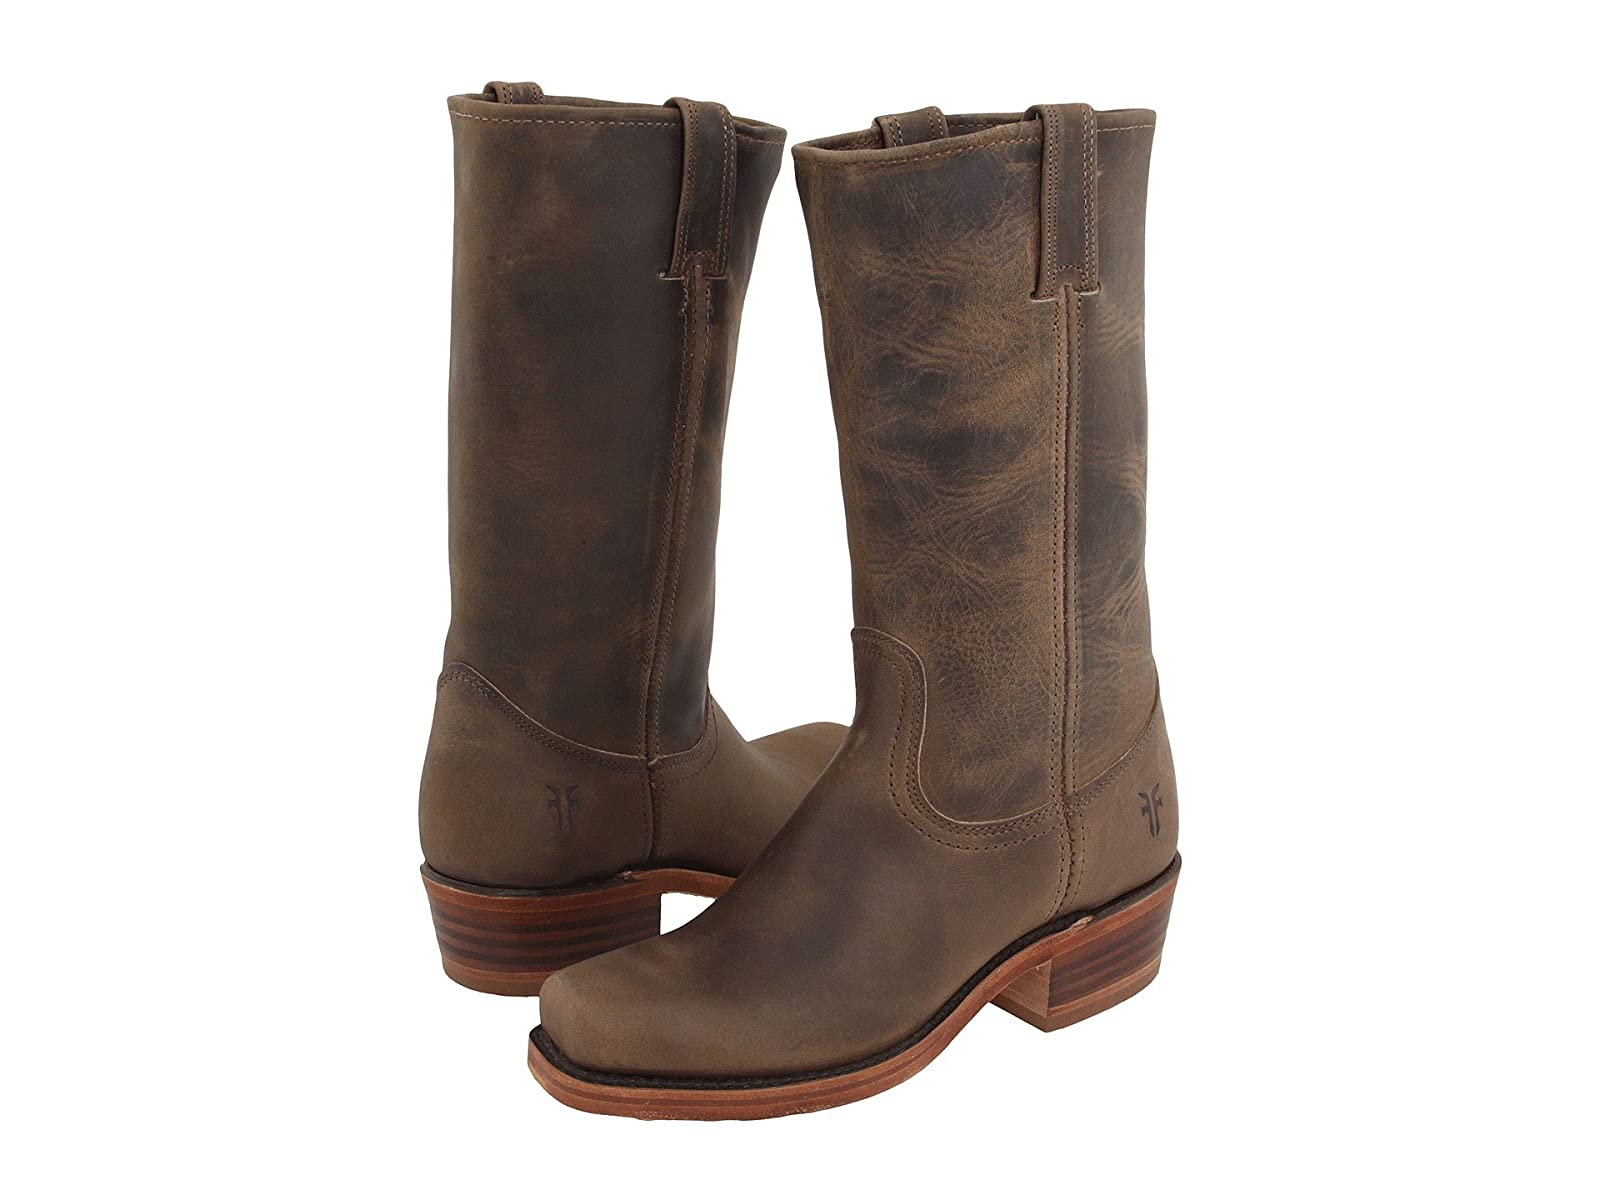 Frye Cavalry WAffordable and distinctive shoes